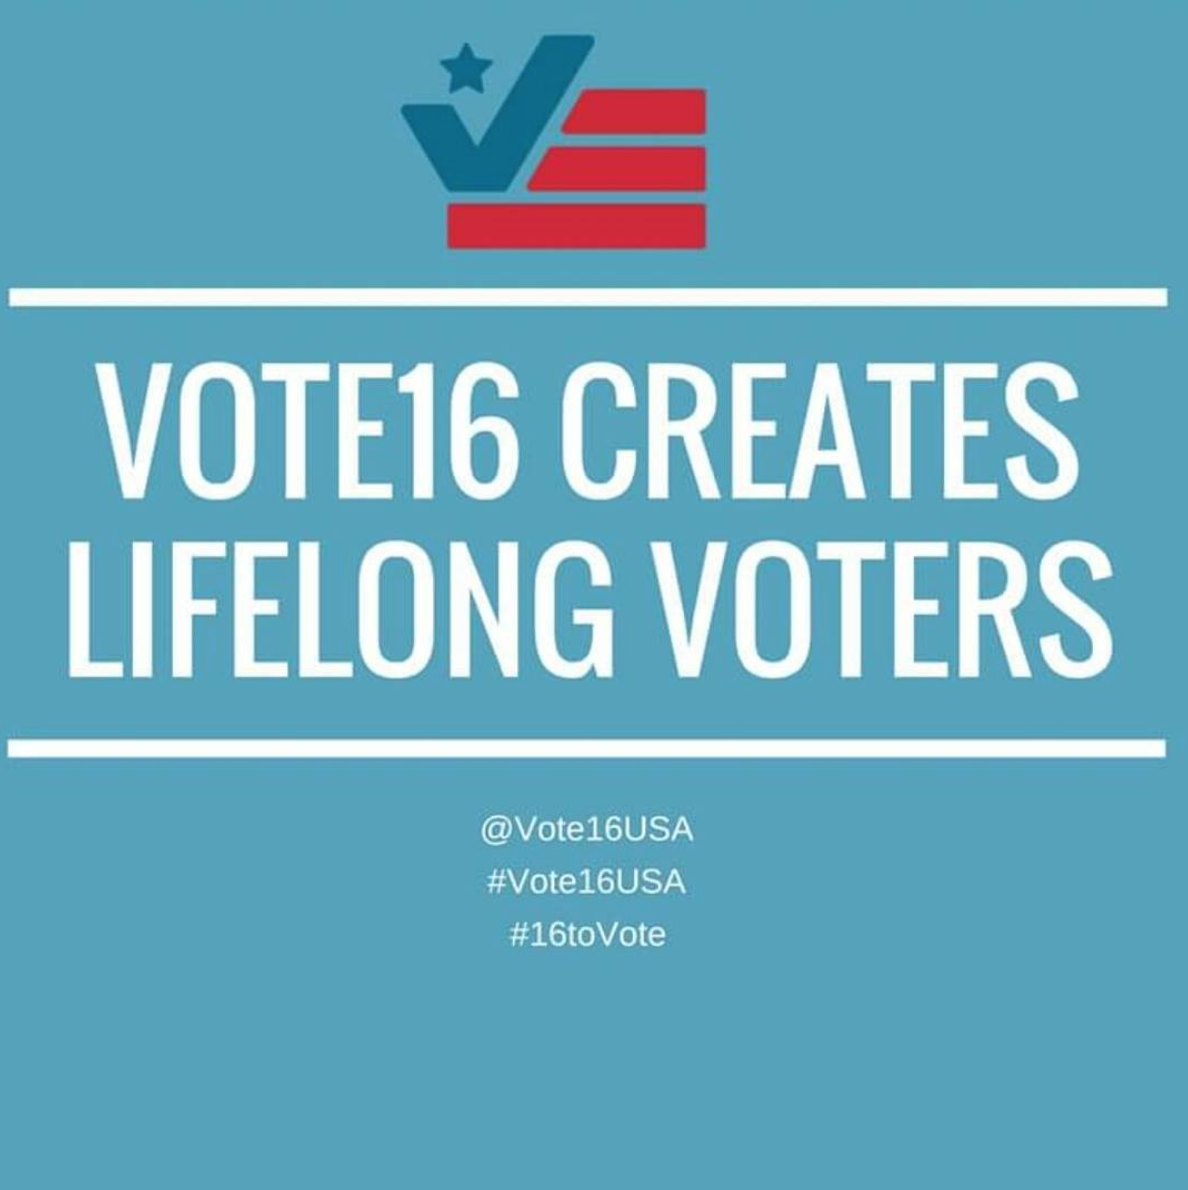 VOTE16 - A Project of Generation Citizen